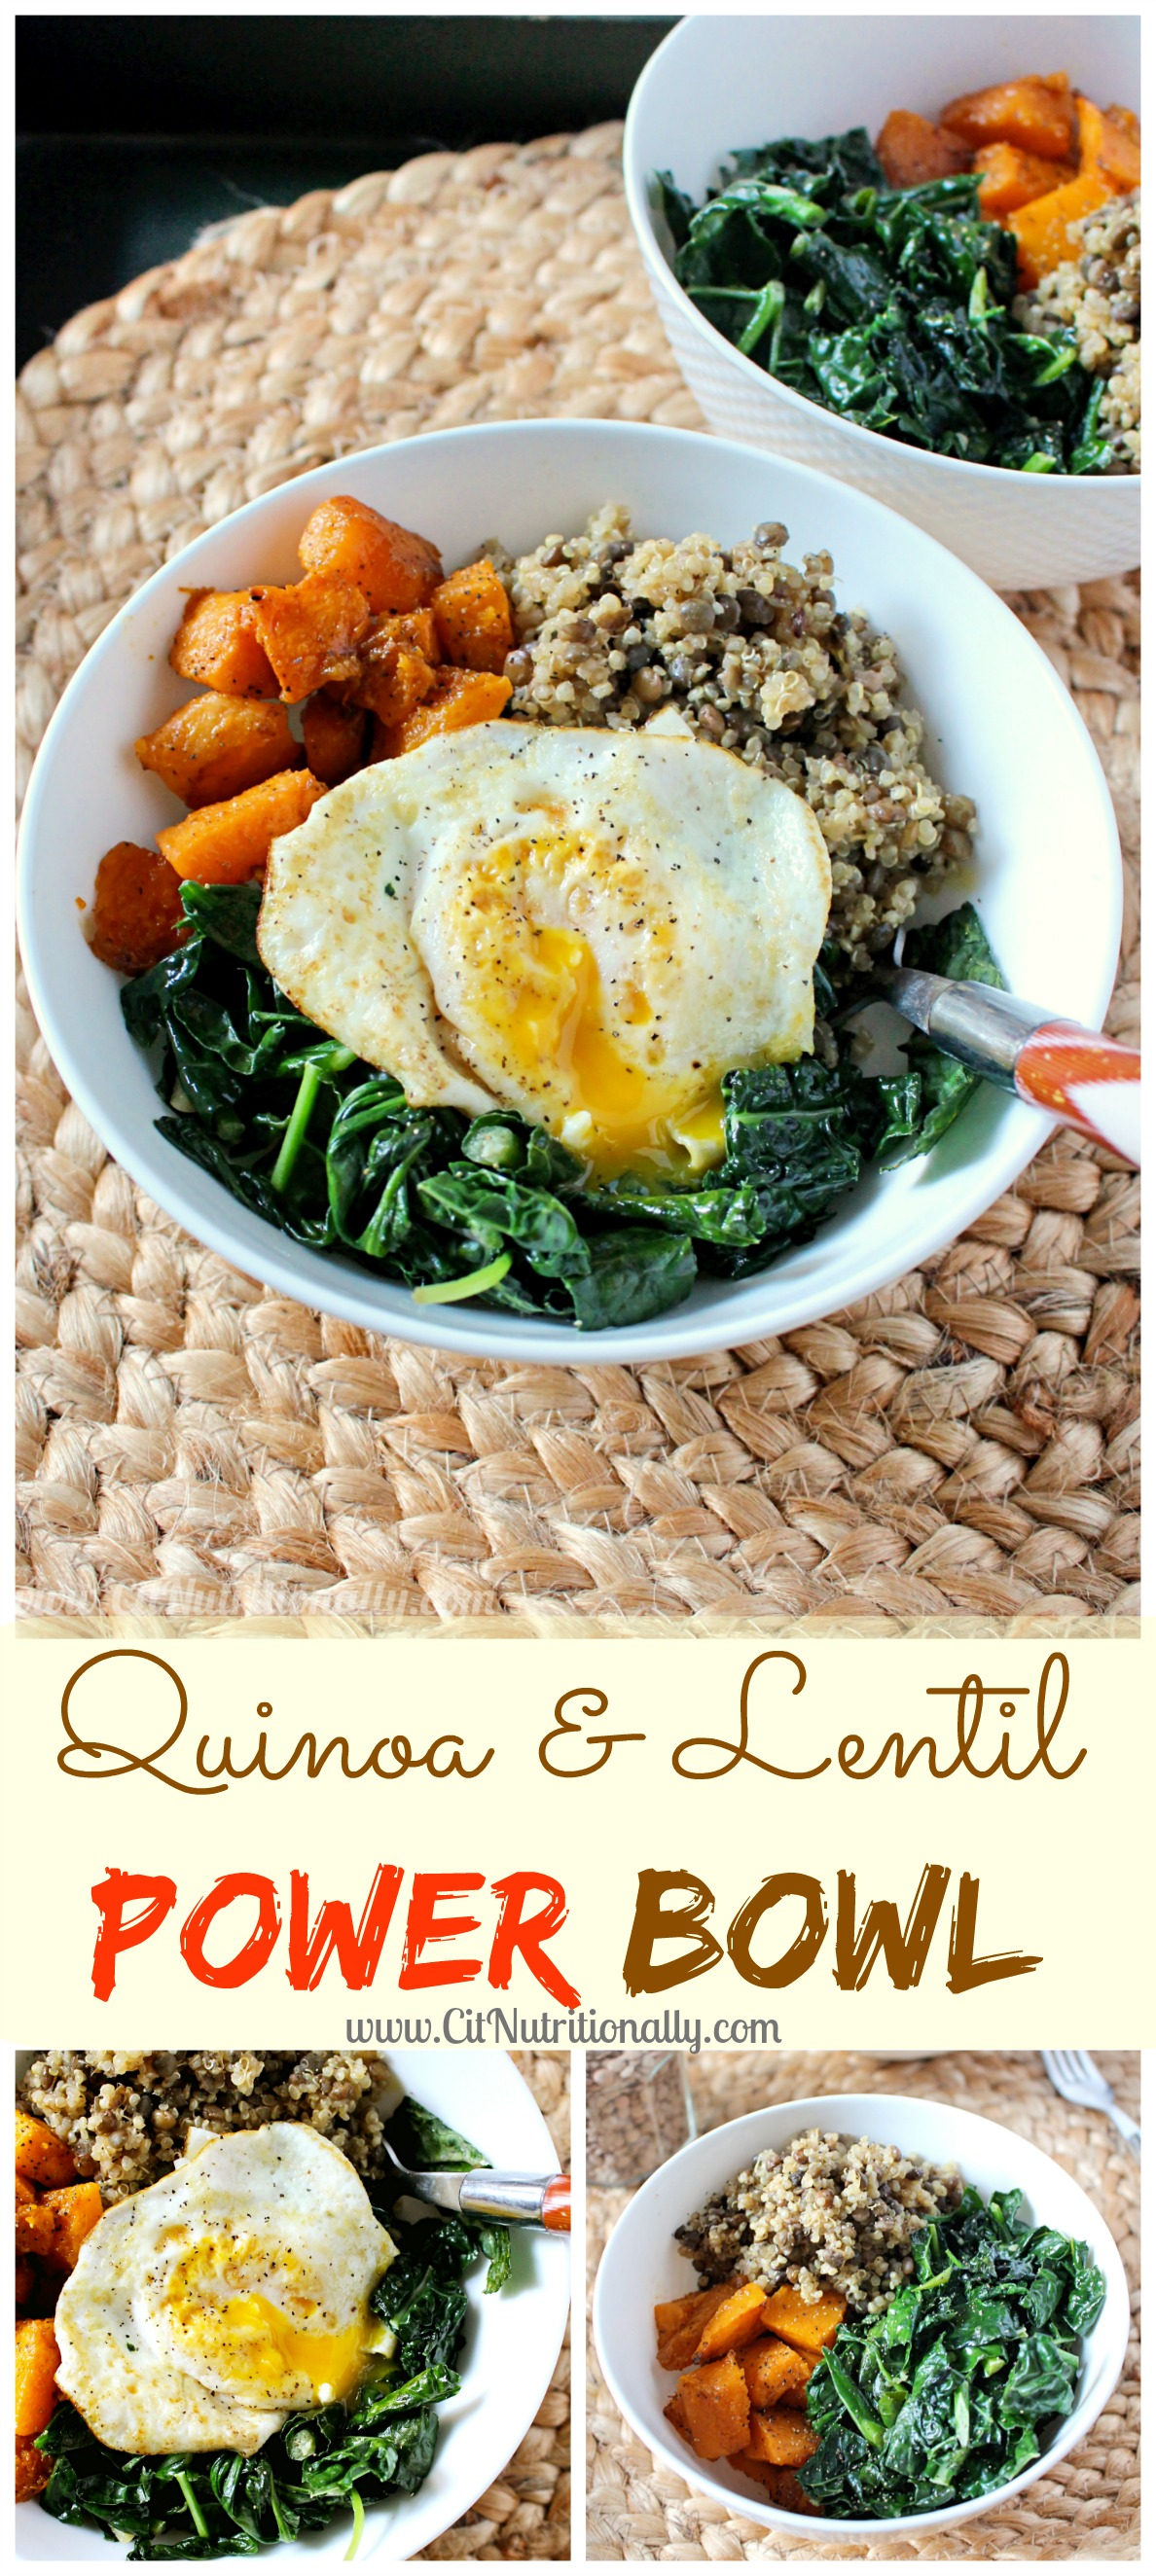 Quinoa and Lentil Power Bowl | C it Nutritionally